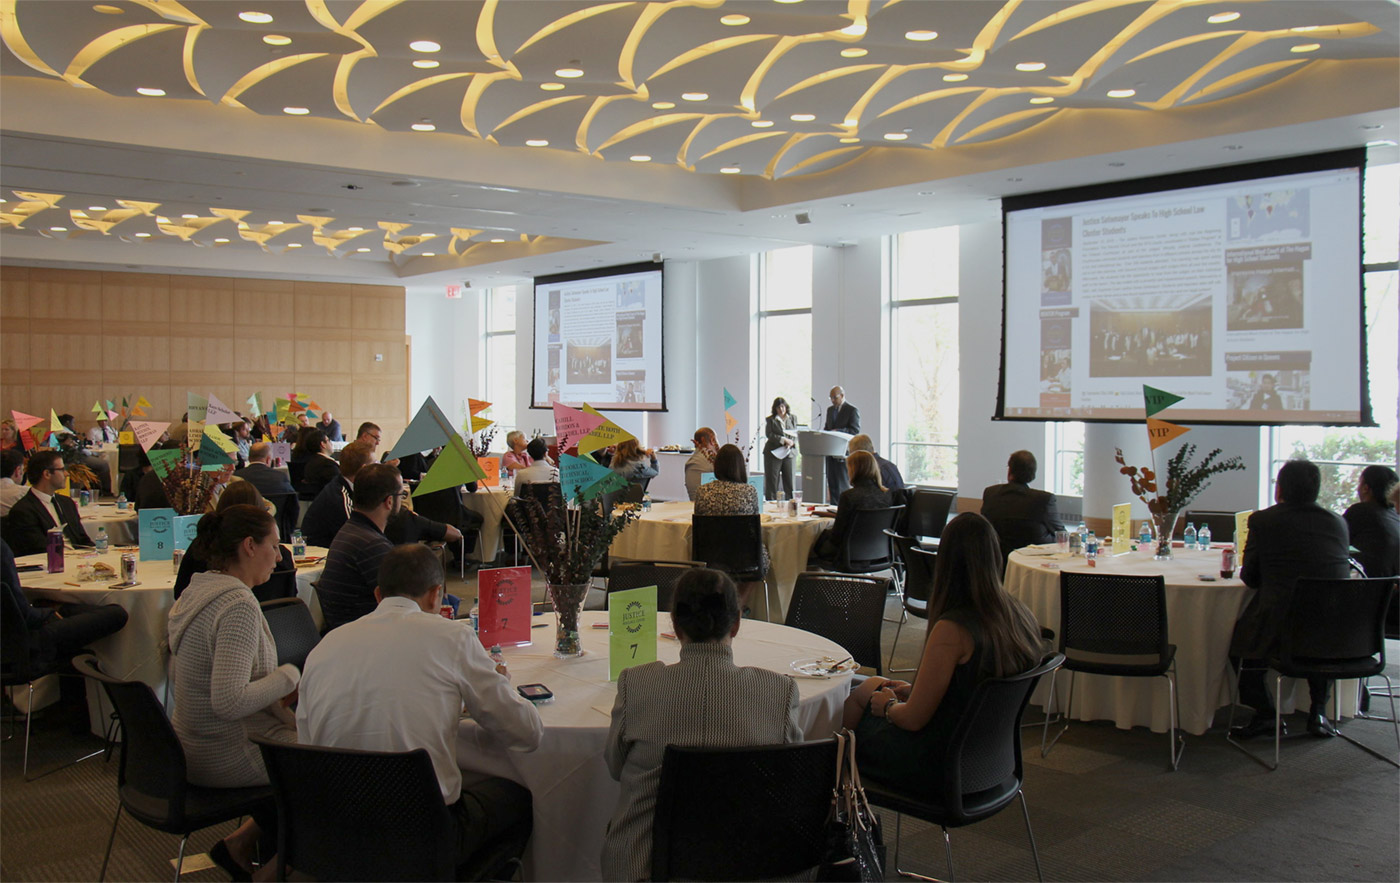 "<a href=""http://jrcnyc.org/site/2016/09/28/2016-mentor-law-firmschool-partnership-kick-off-luncheon/"">2016 MENTOR Law Firm/School Partnership Kick-Off Luncheon</a>"